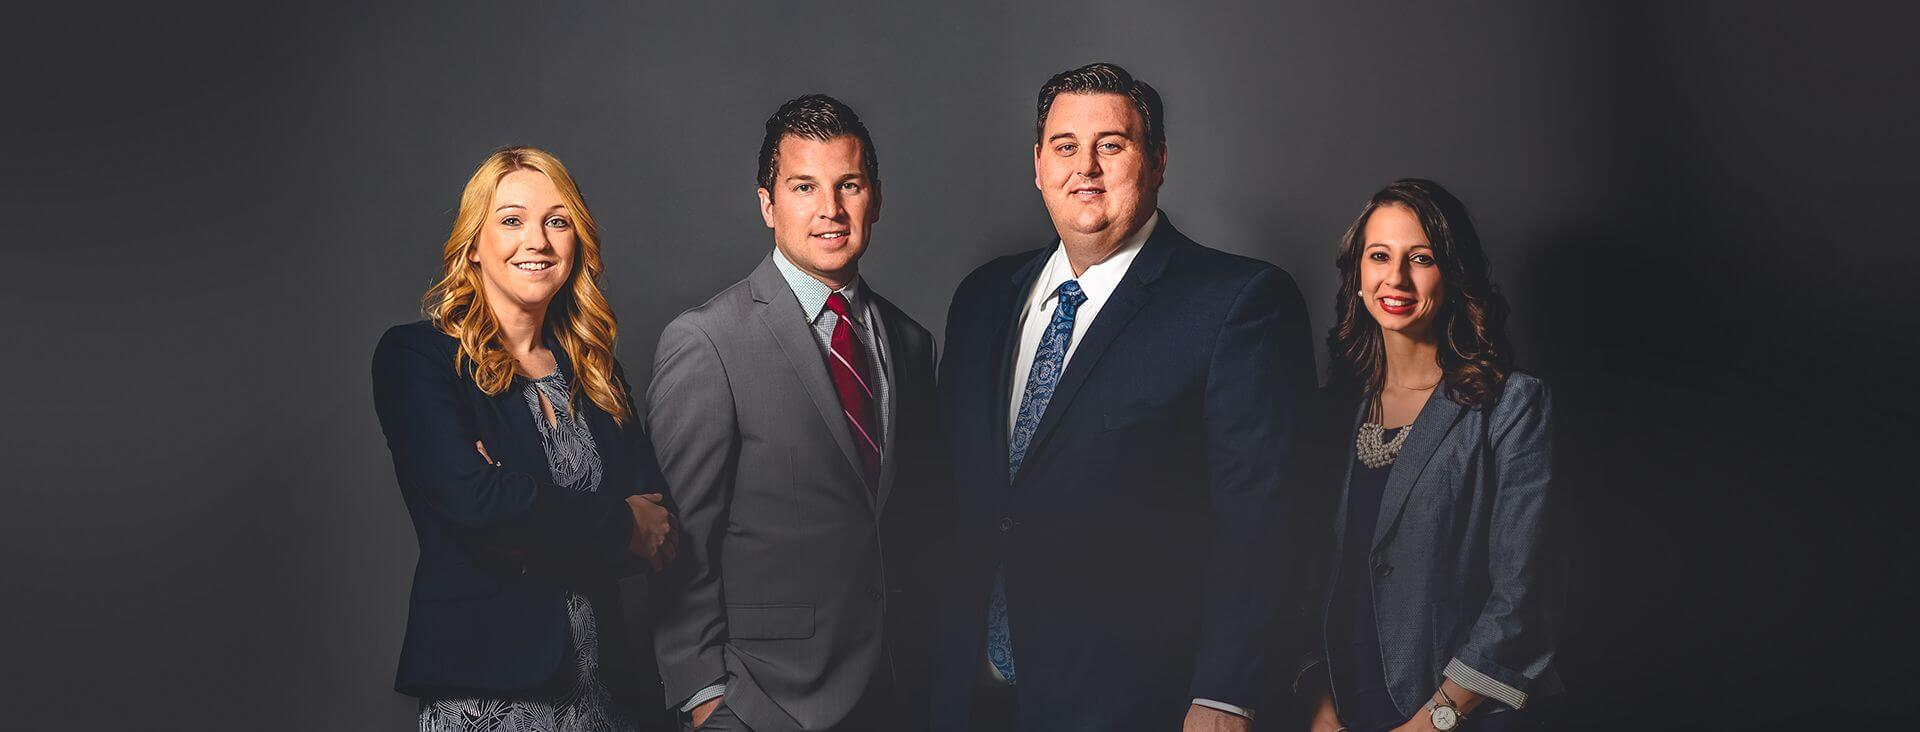 Attorneys at Family Law Partners